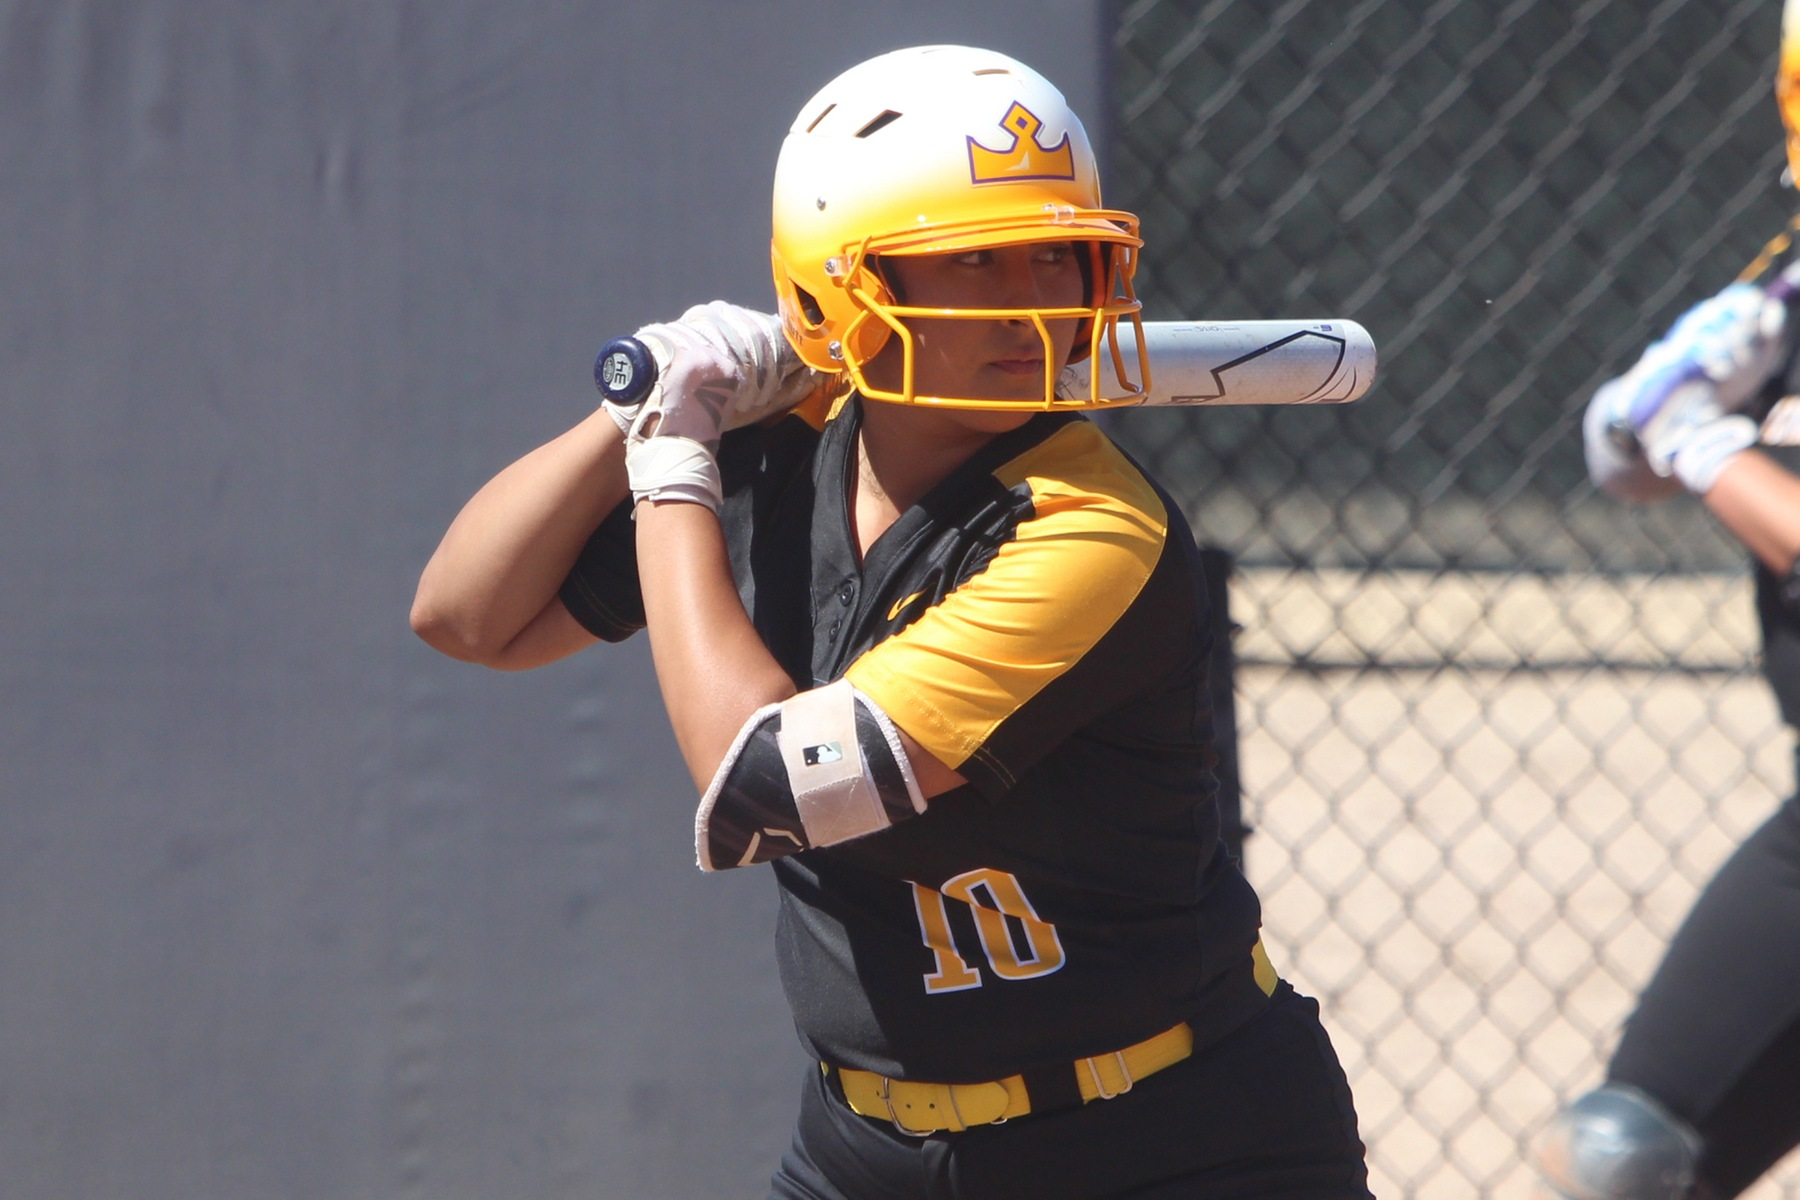 Celeste Ekman recorded 2 RBI during the first game of a doubleheader with La Verne.